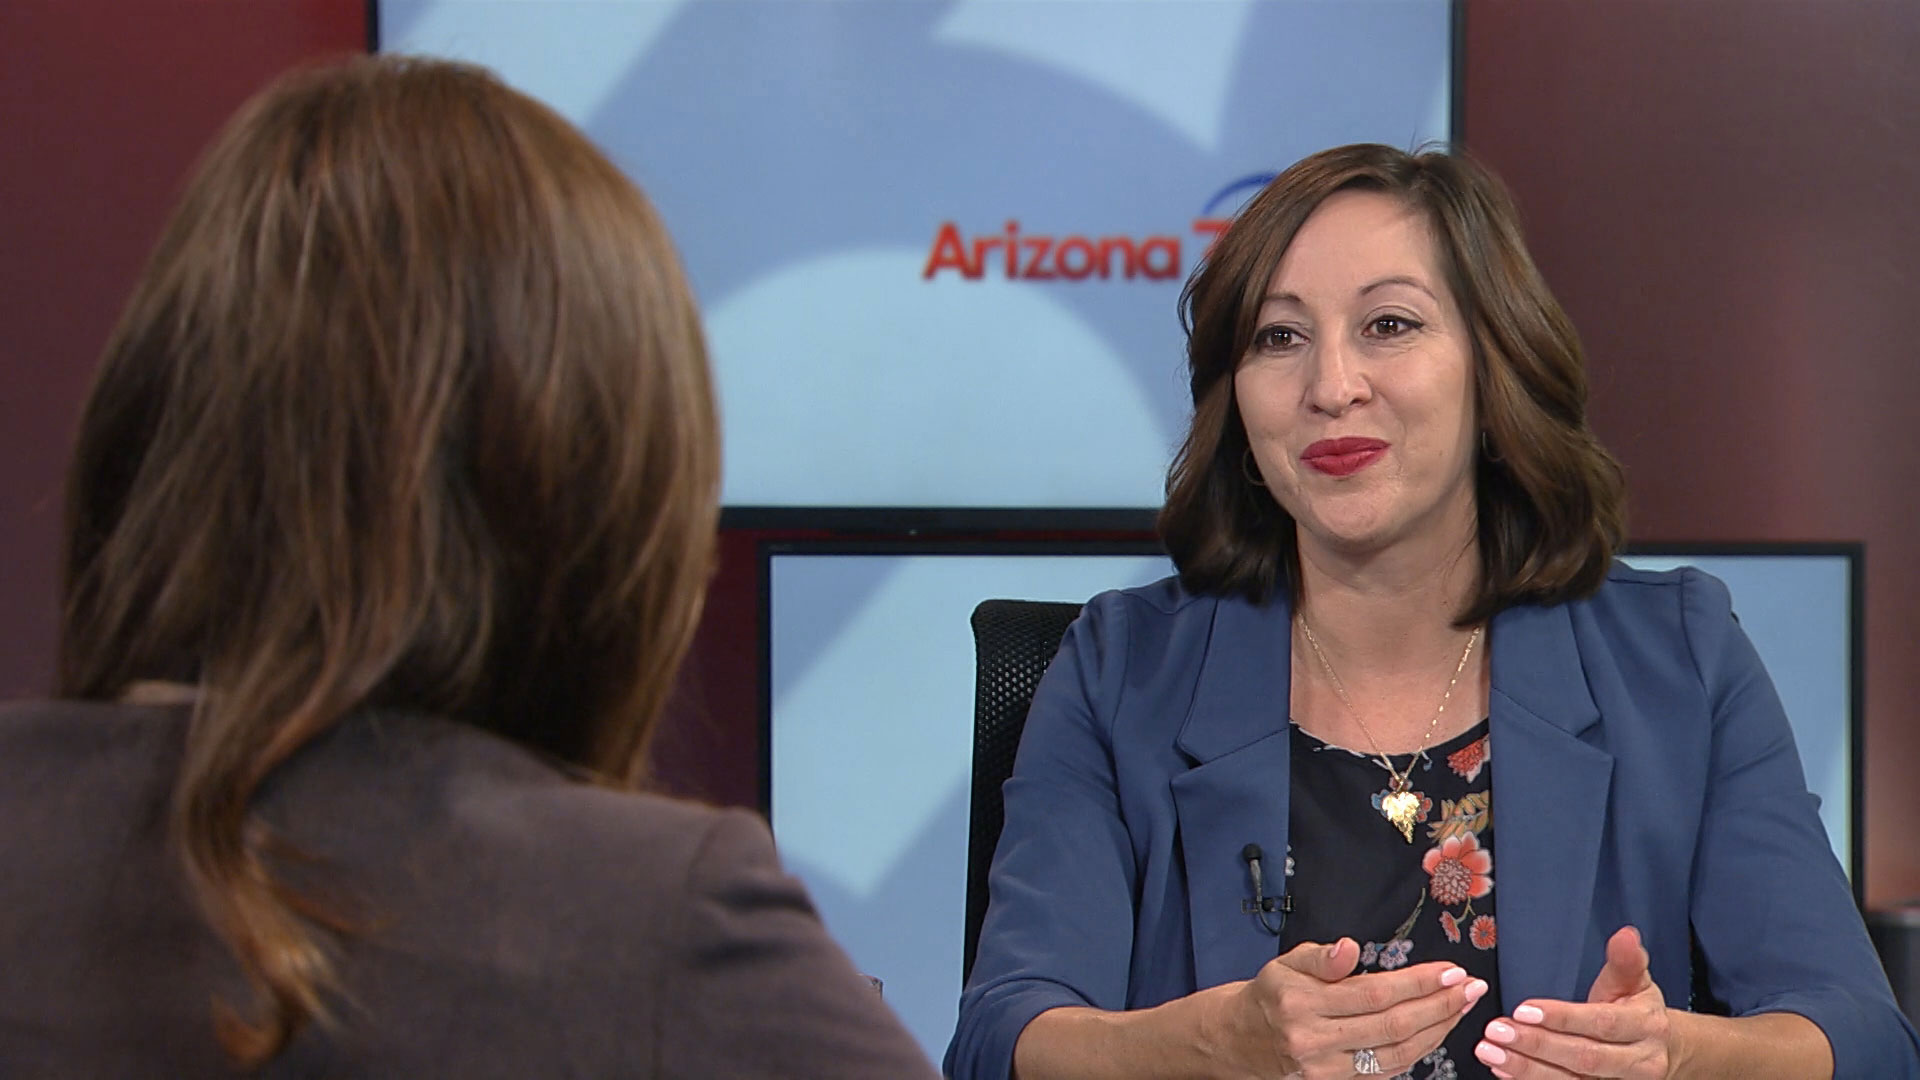 Andrea Romero, director of the Frances McClelland Institute for Children, Youth and Families, in Arizona 360's studio.